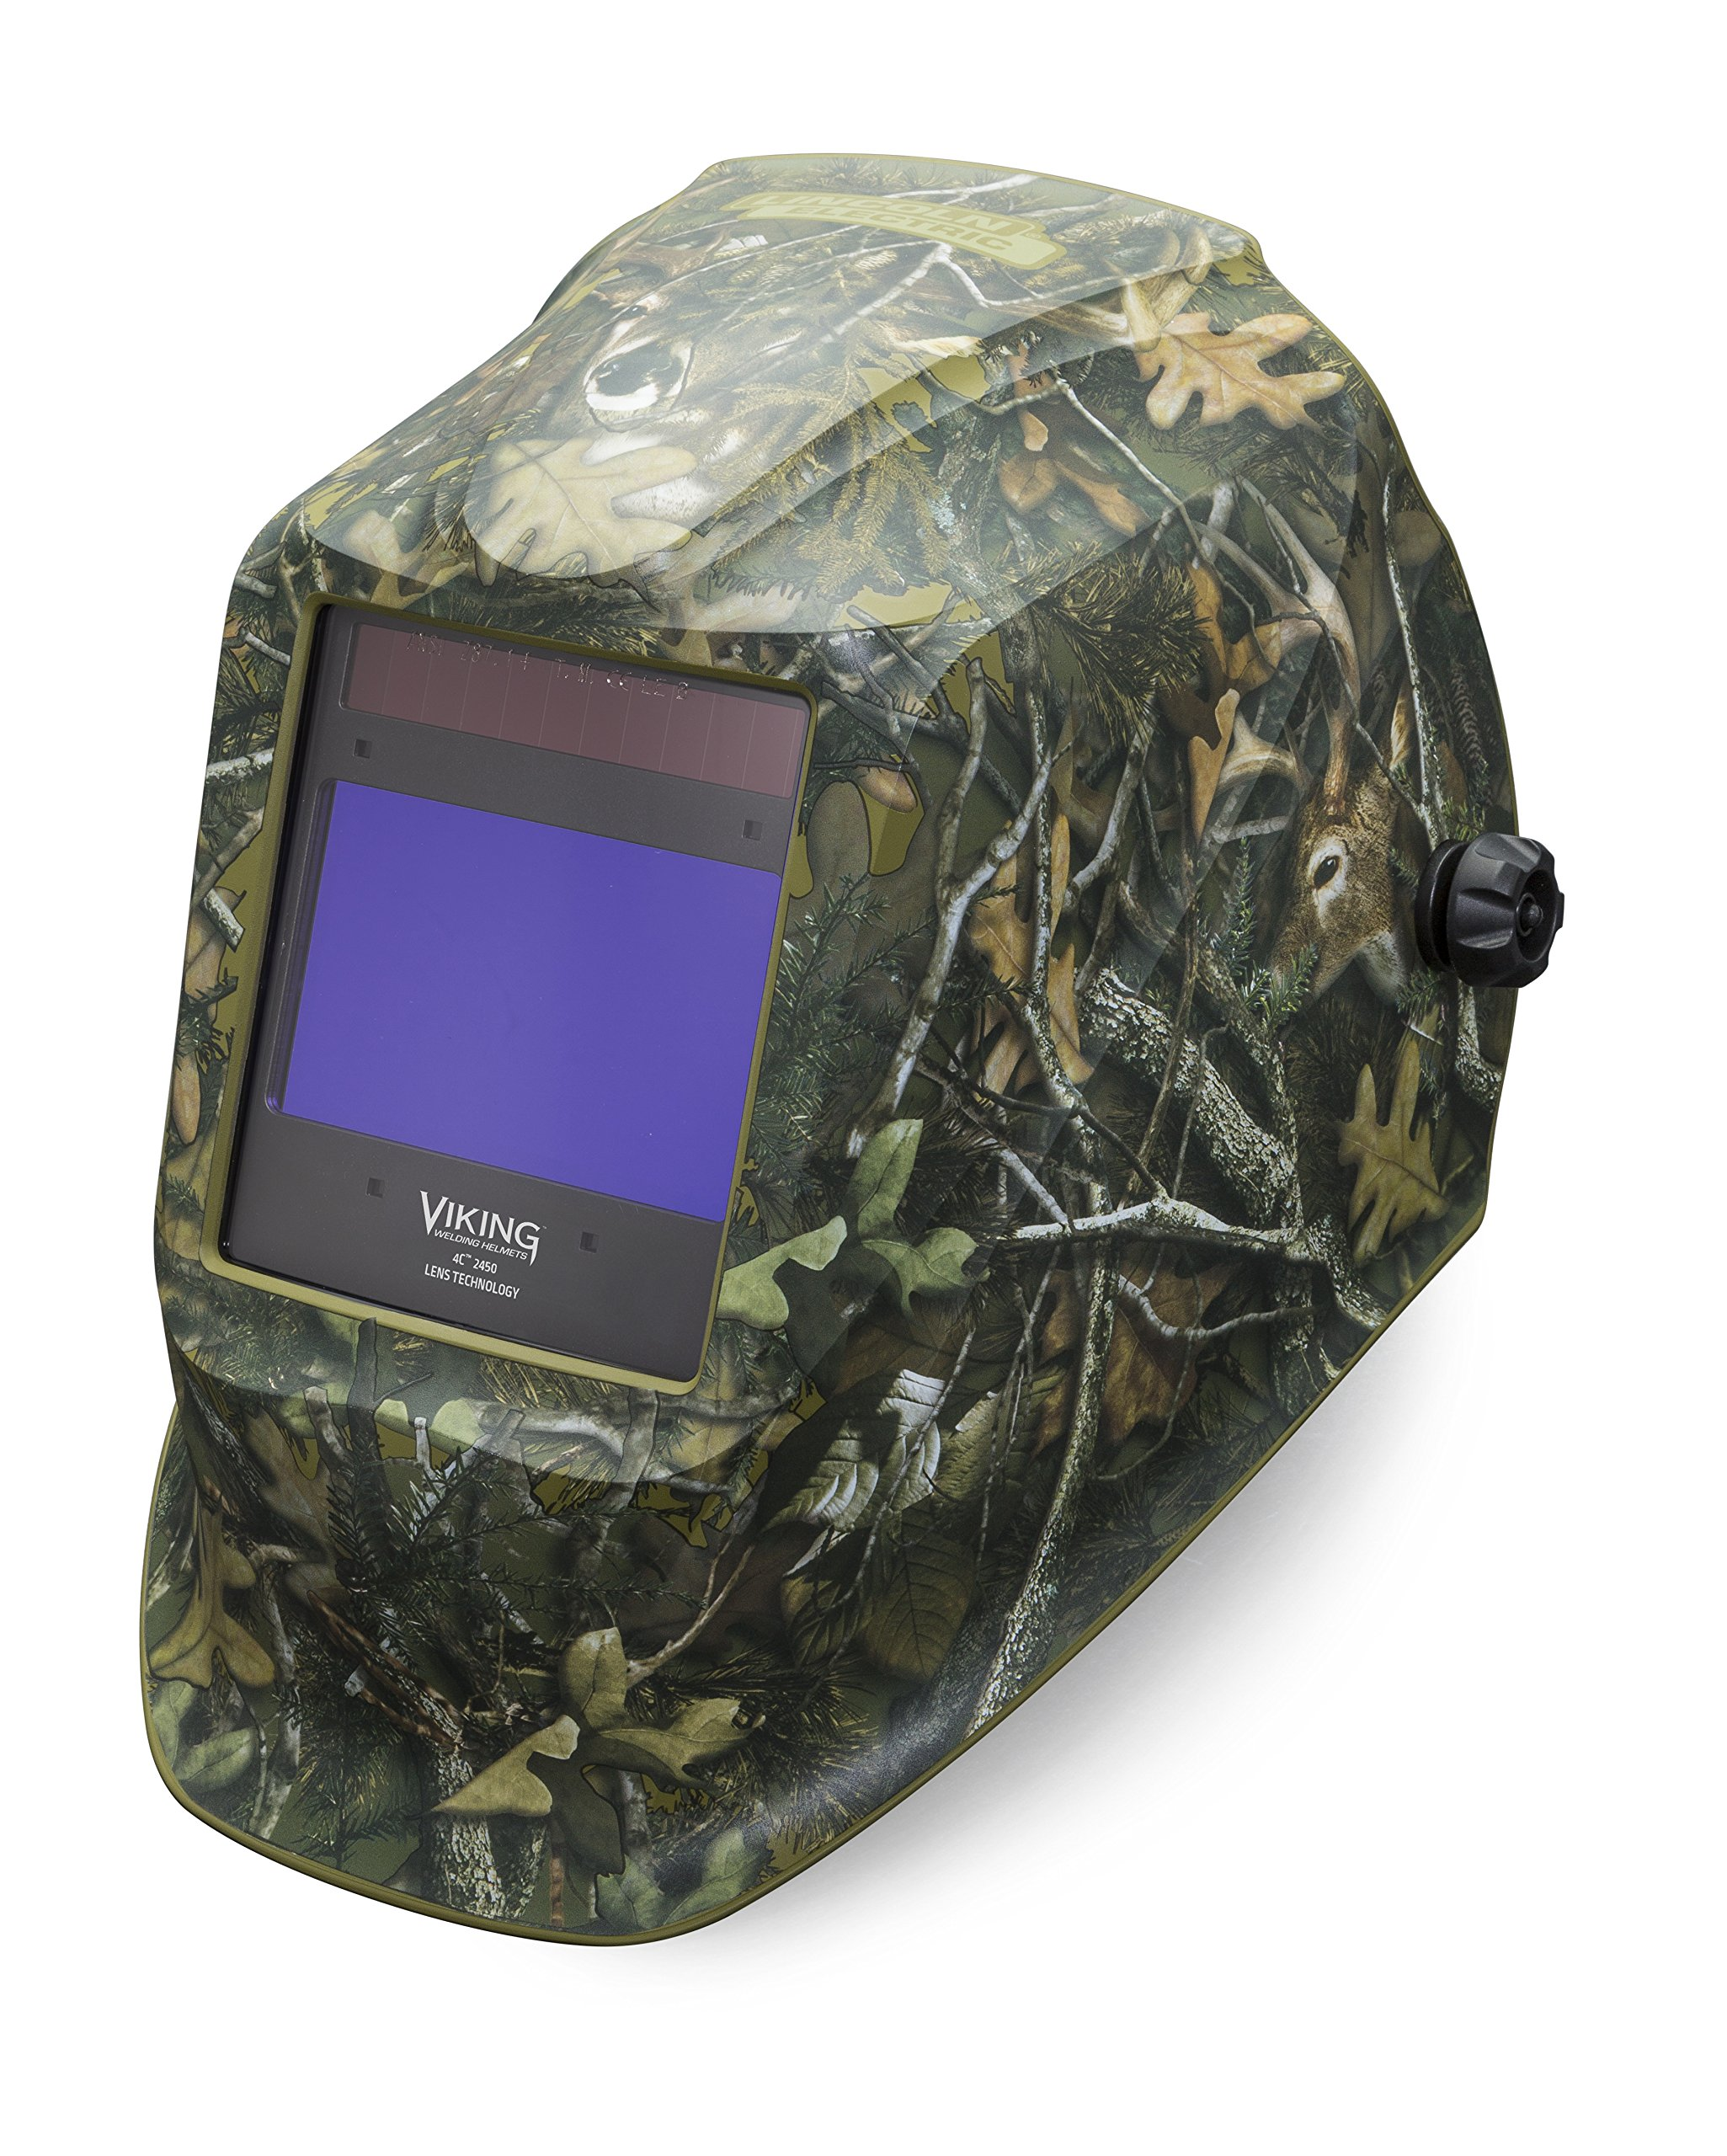 Lincoln Electric VIKING 2450 White Tail Camo Welding Helmet with 4C Lens Technology - K4411-3